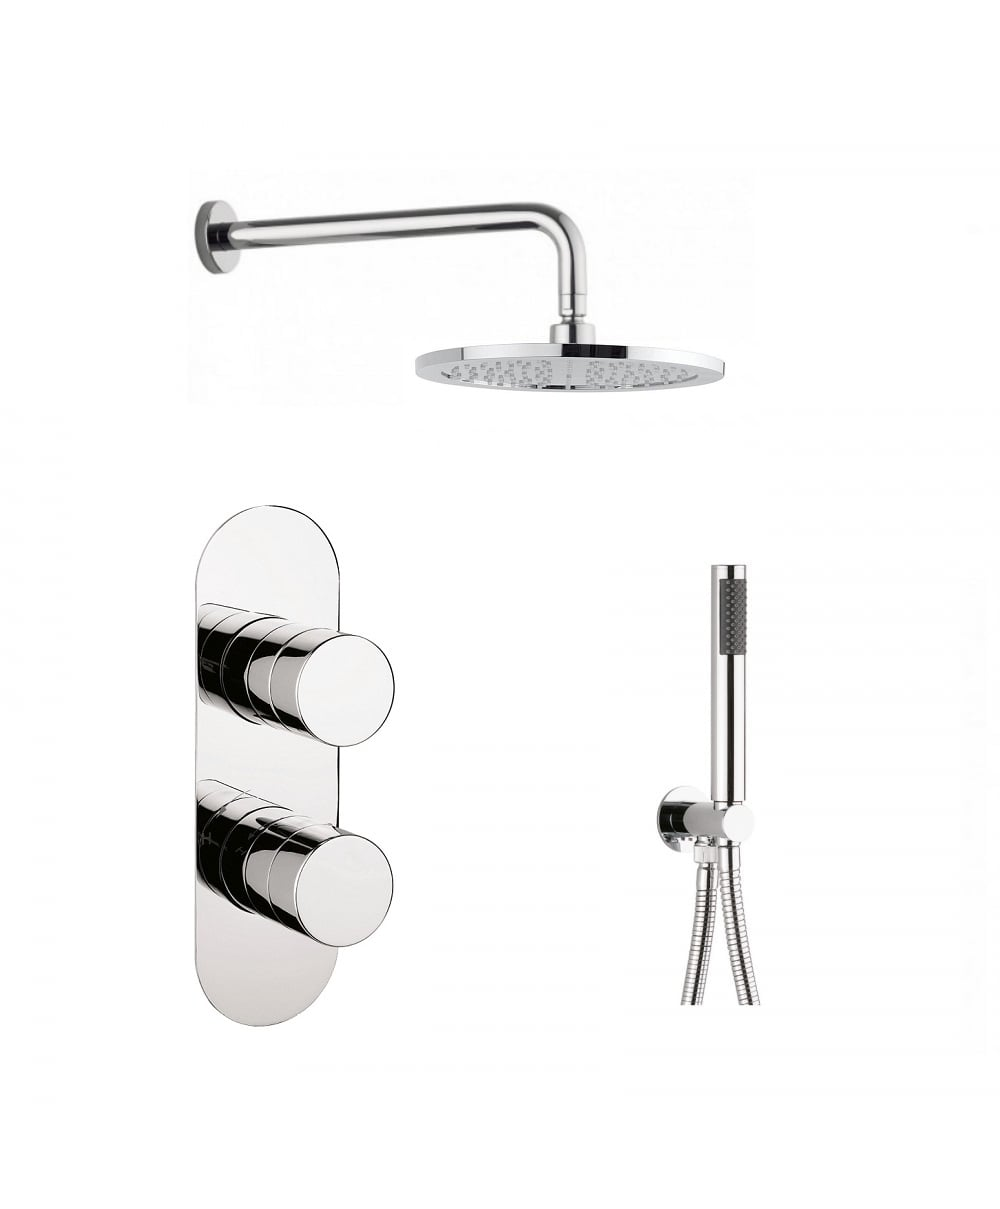 Crosswater Central Thermostatic Shower Valve With 2 Way Diverter, Wall  Shower Arm And Dial 225mm ...